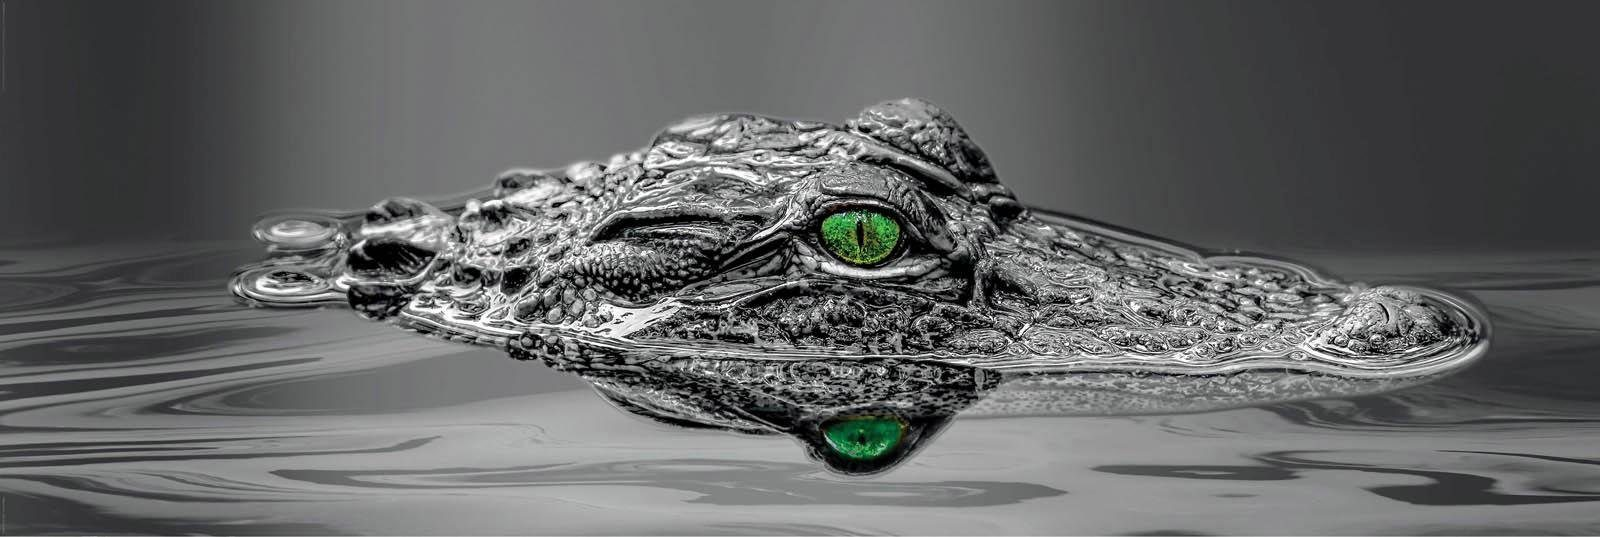 INOSIGN Deco-Panel »Alligator Eyes«, Tiermotiv, 156/52 cm